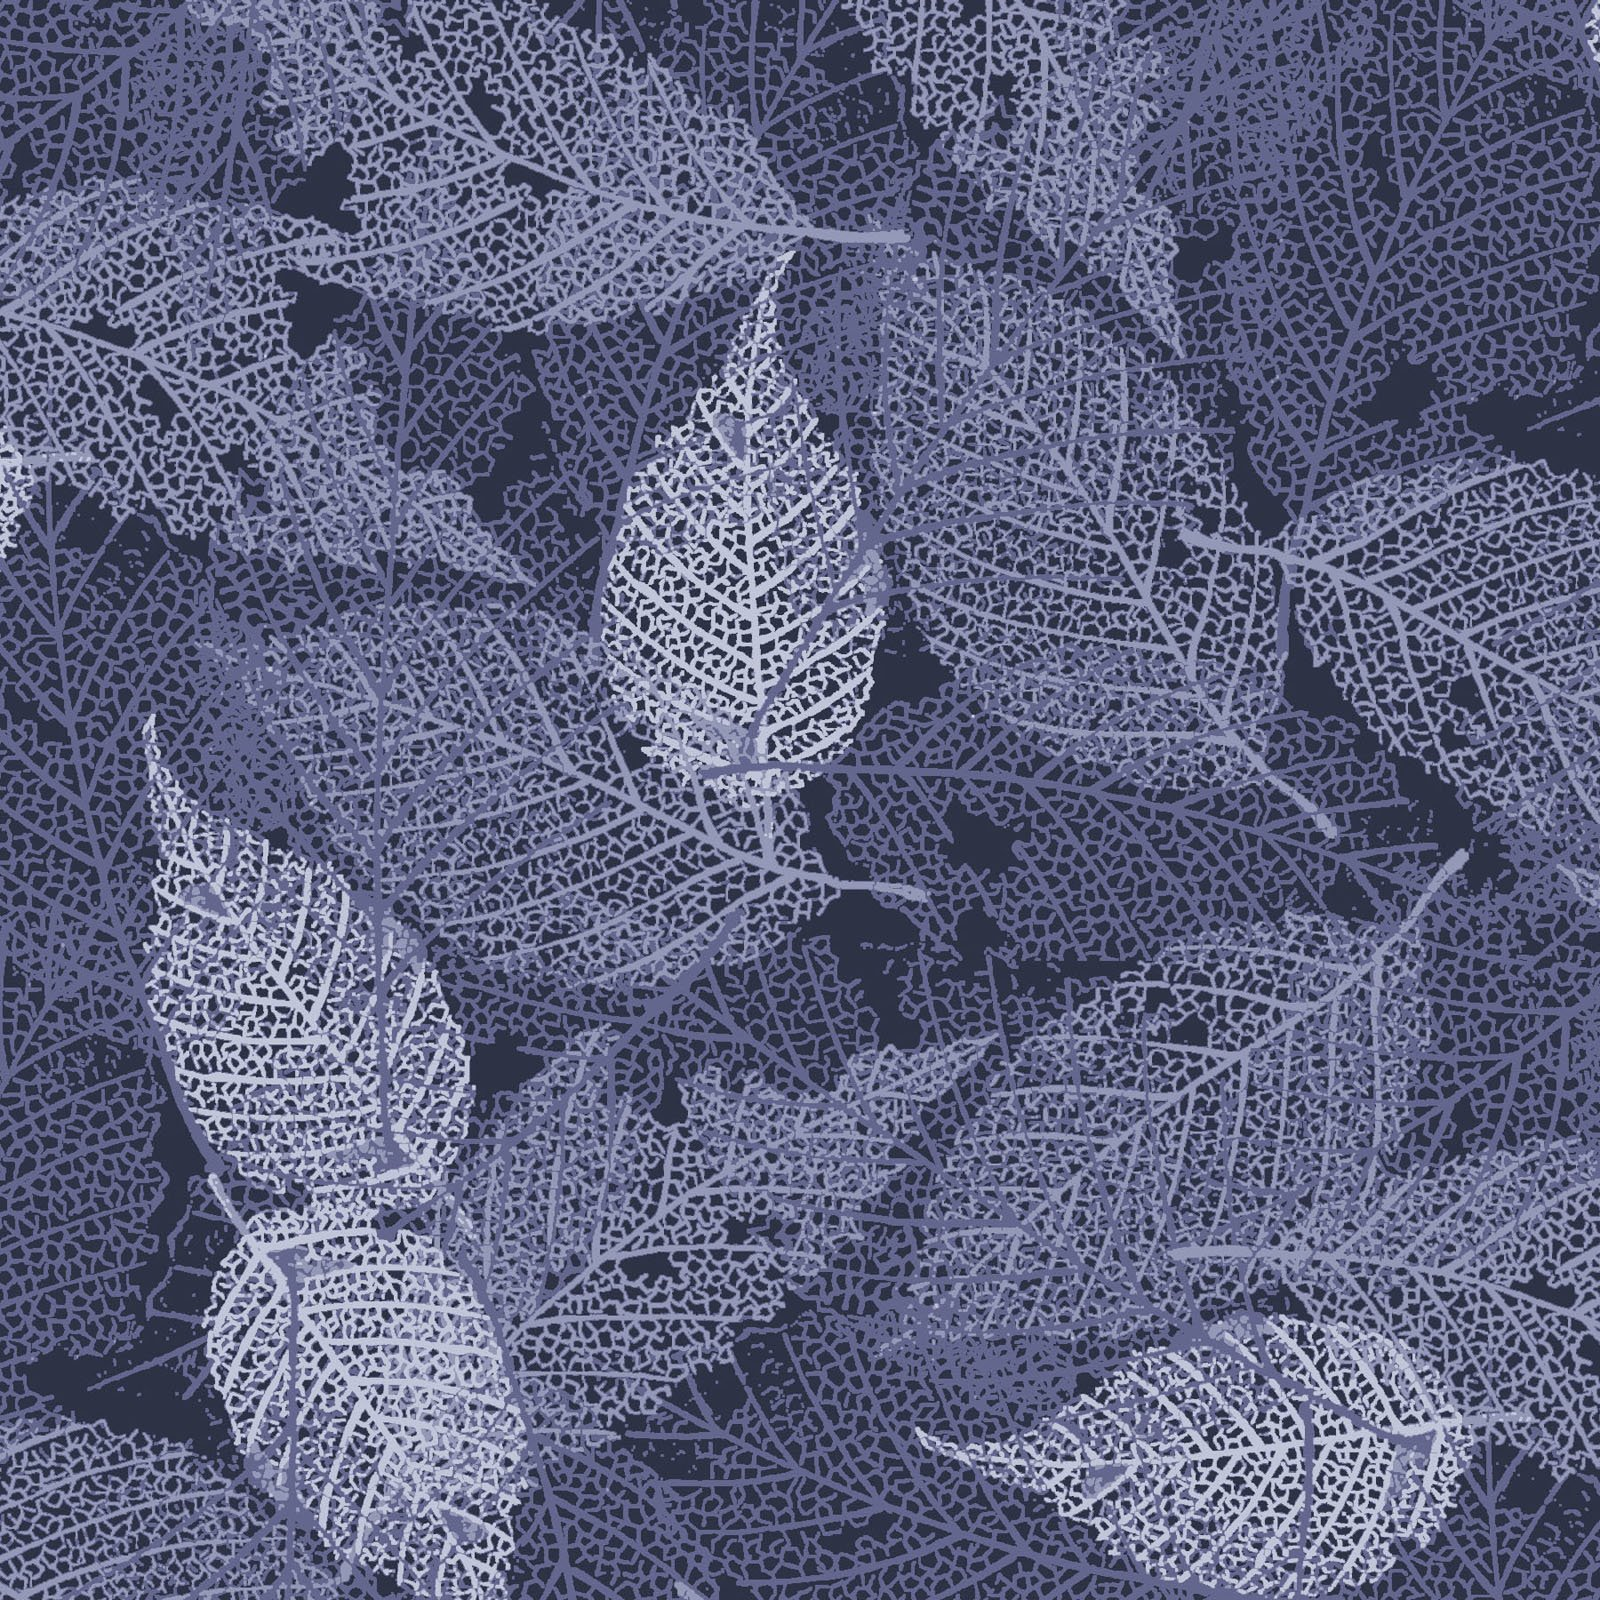 FOLI-4478 SB - FOLIAGE BY P&B BOUTIQUE TEXTURE LEAVES SILVER/BLUE - ARRIVING IN MAY 2021